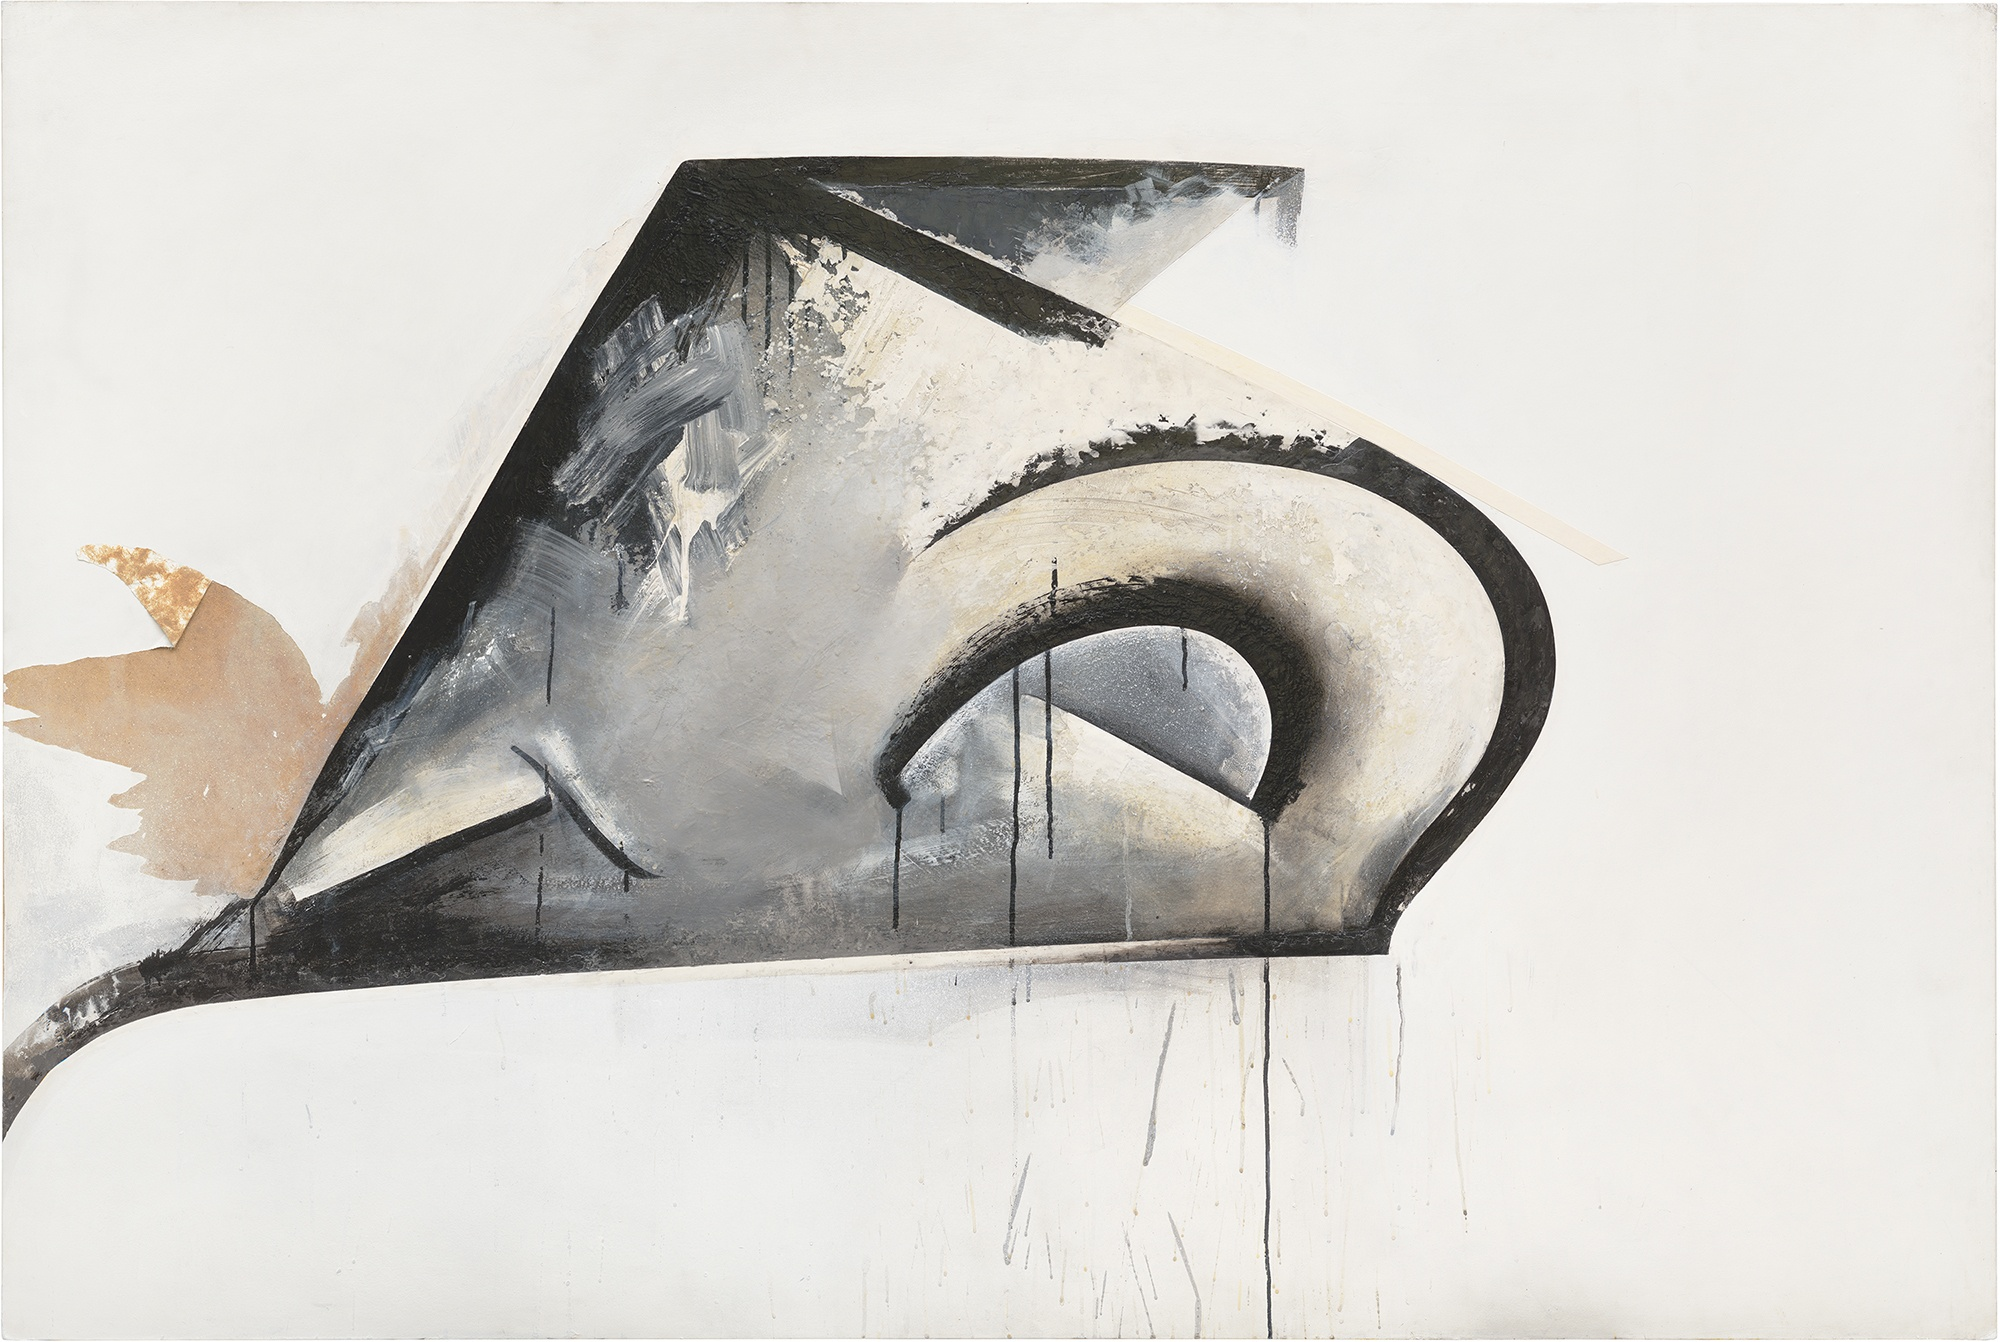 Jay DeFeo, Pend O'Reille No. 1 (Eternal Triangle series), 1980